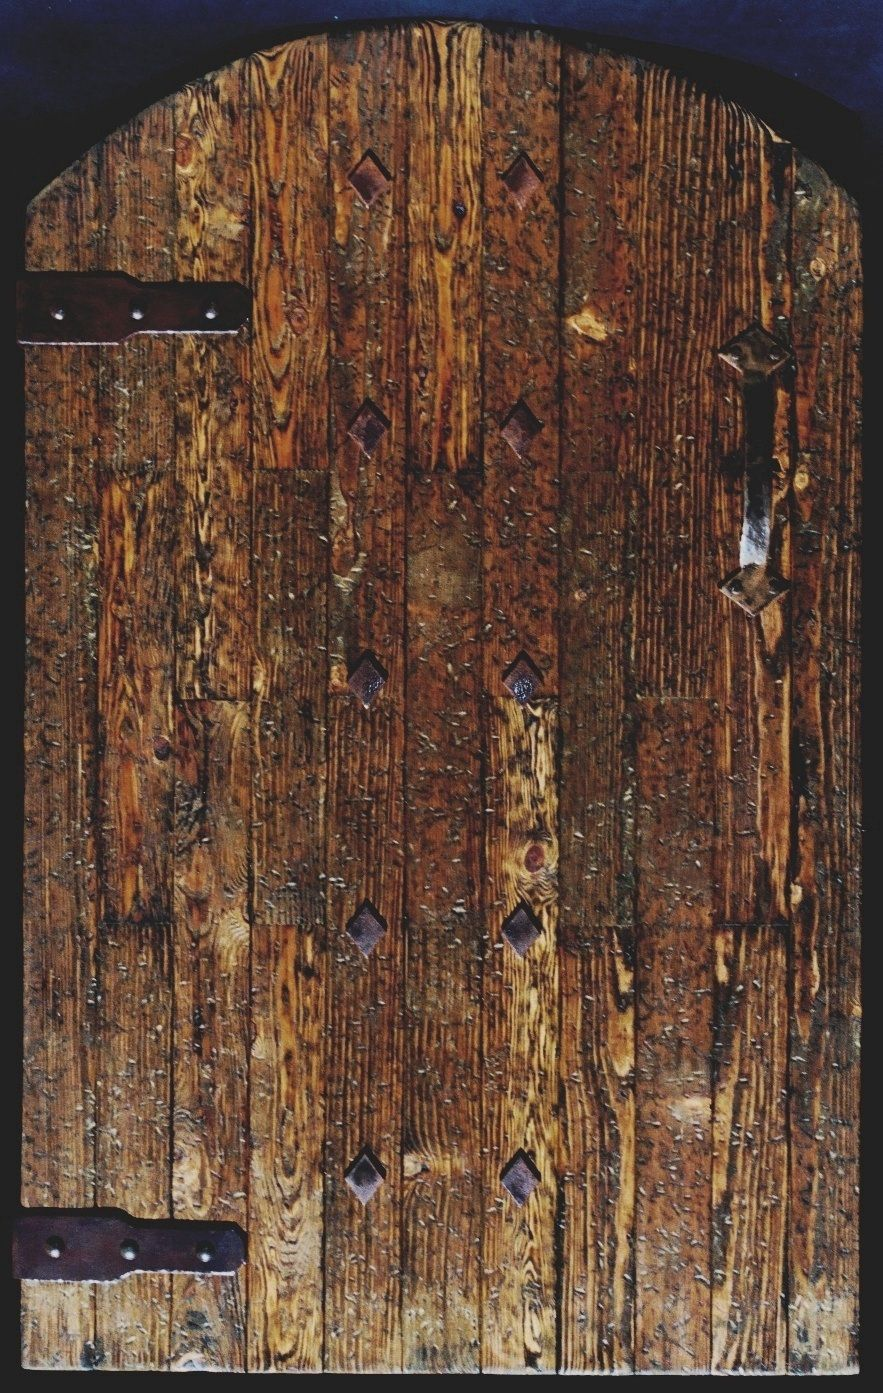 Hand Made Rustic Wood Gate With Old World Charm By Rustic